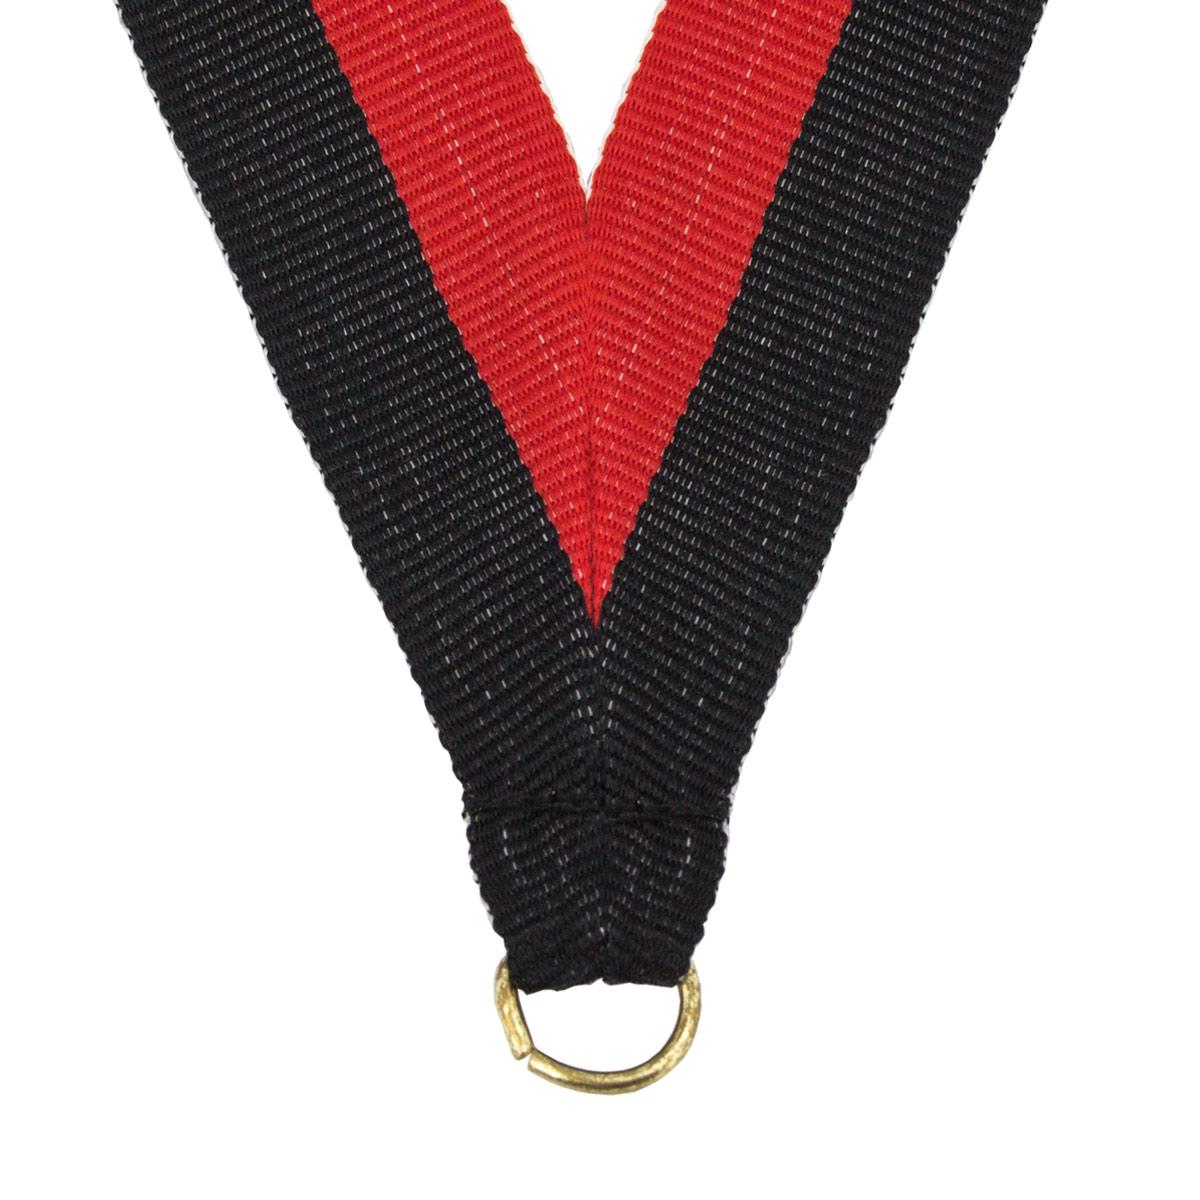 durable neck ribbon in black and red with brass jump ring